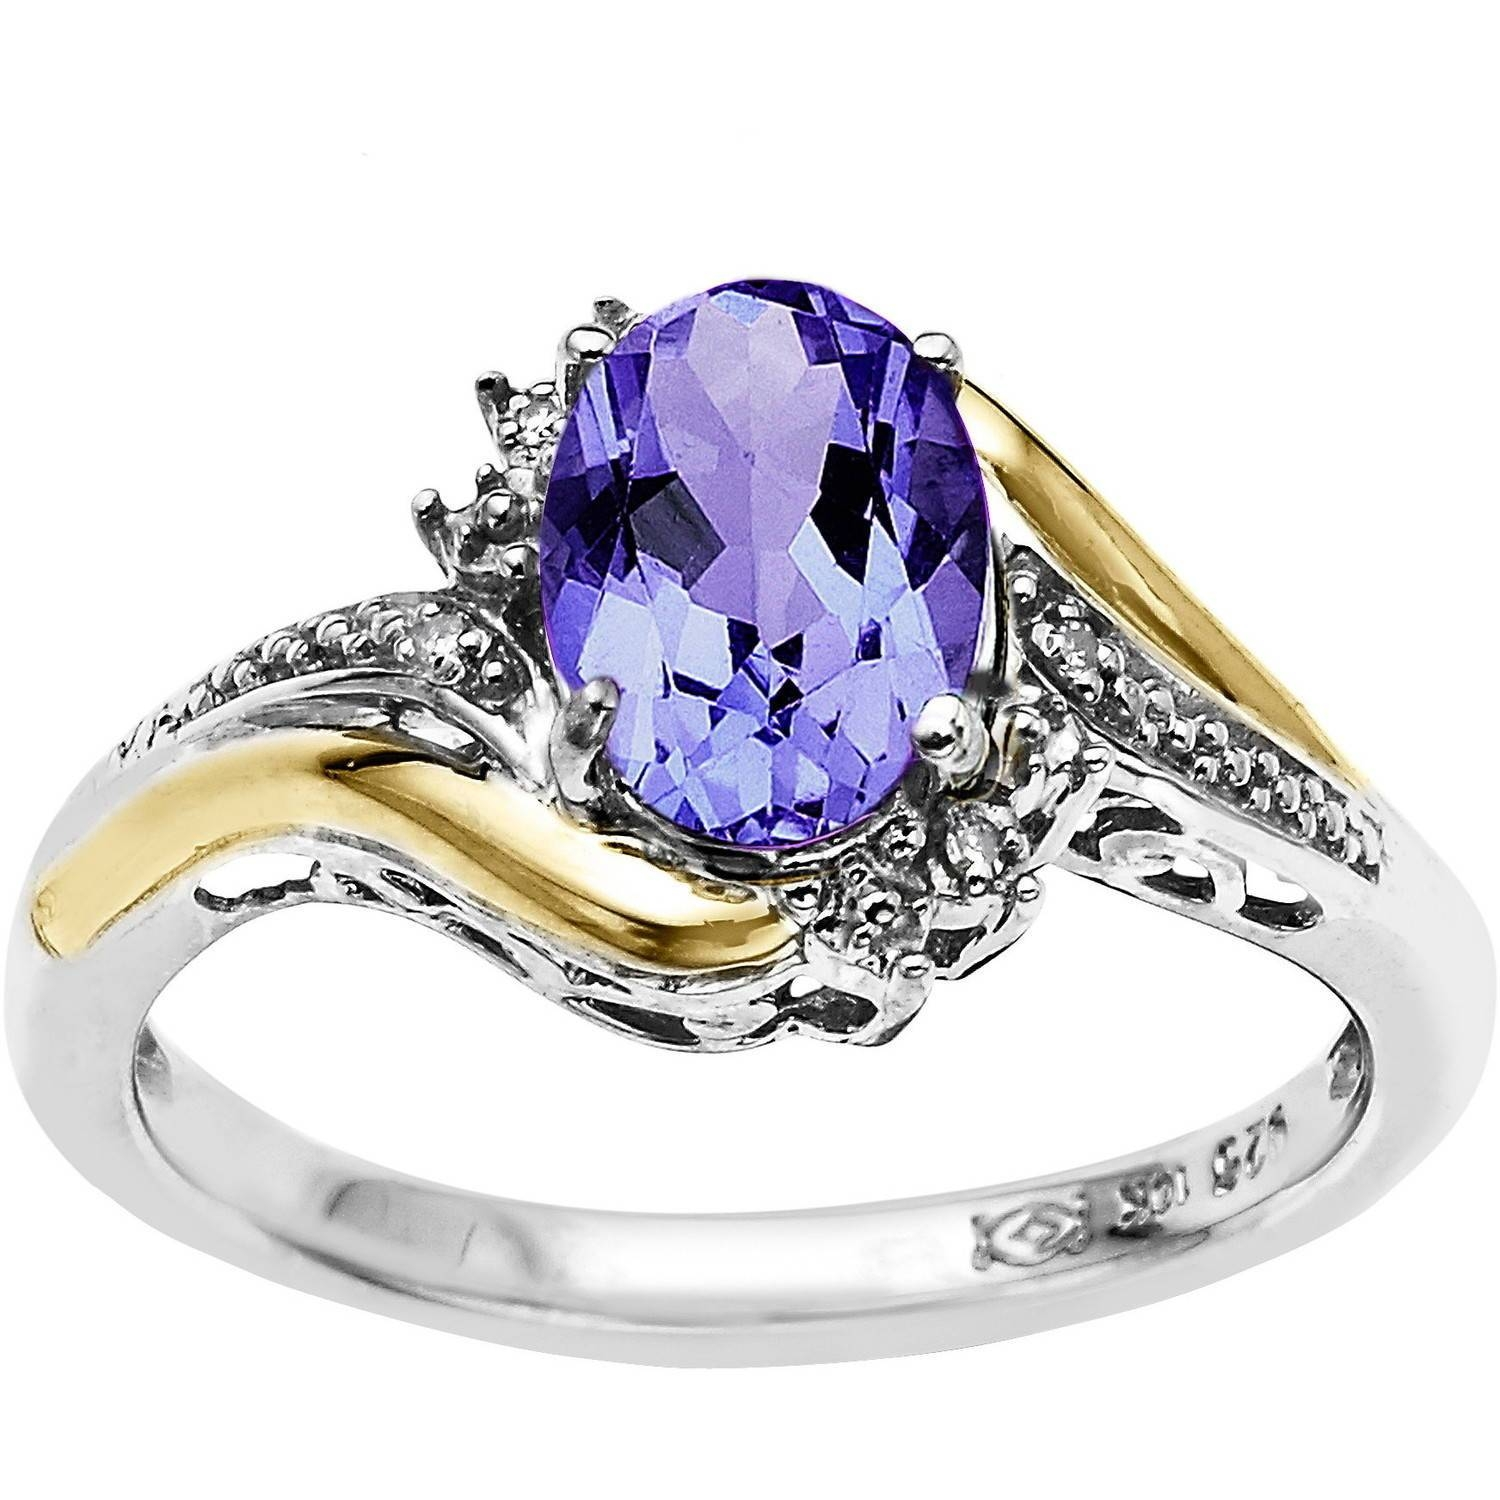 Duet Sterling Silver With 10kt Yellow Gold Oval Amethyst And Intended For Wedding Rings With Amethyst (View 14 of 15)